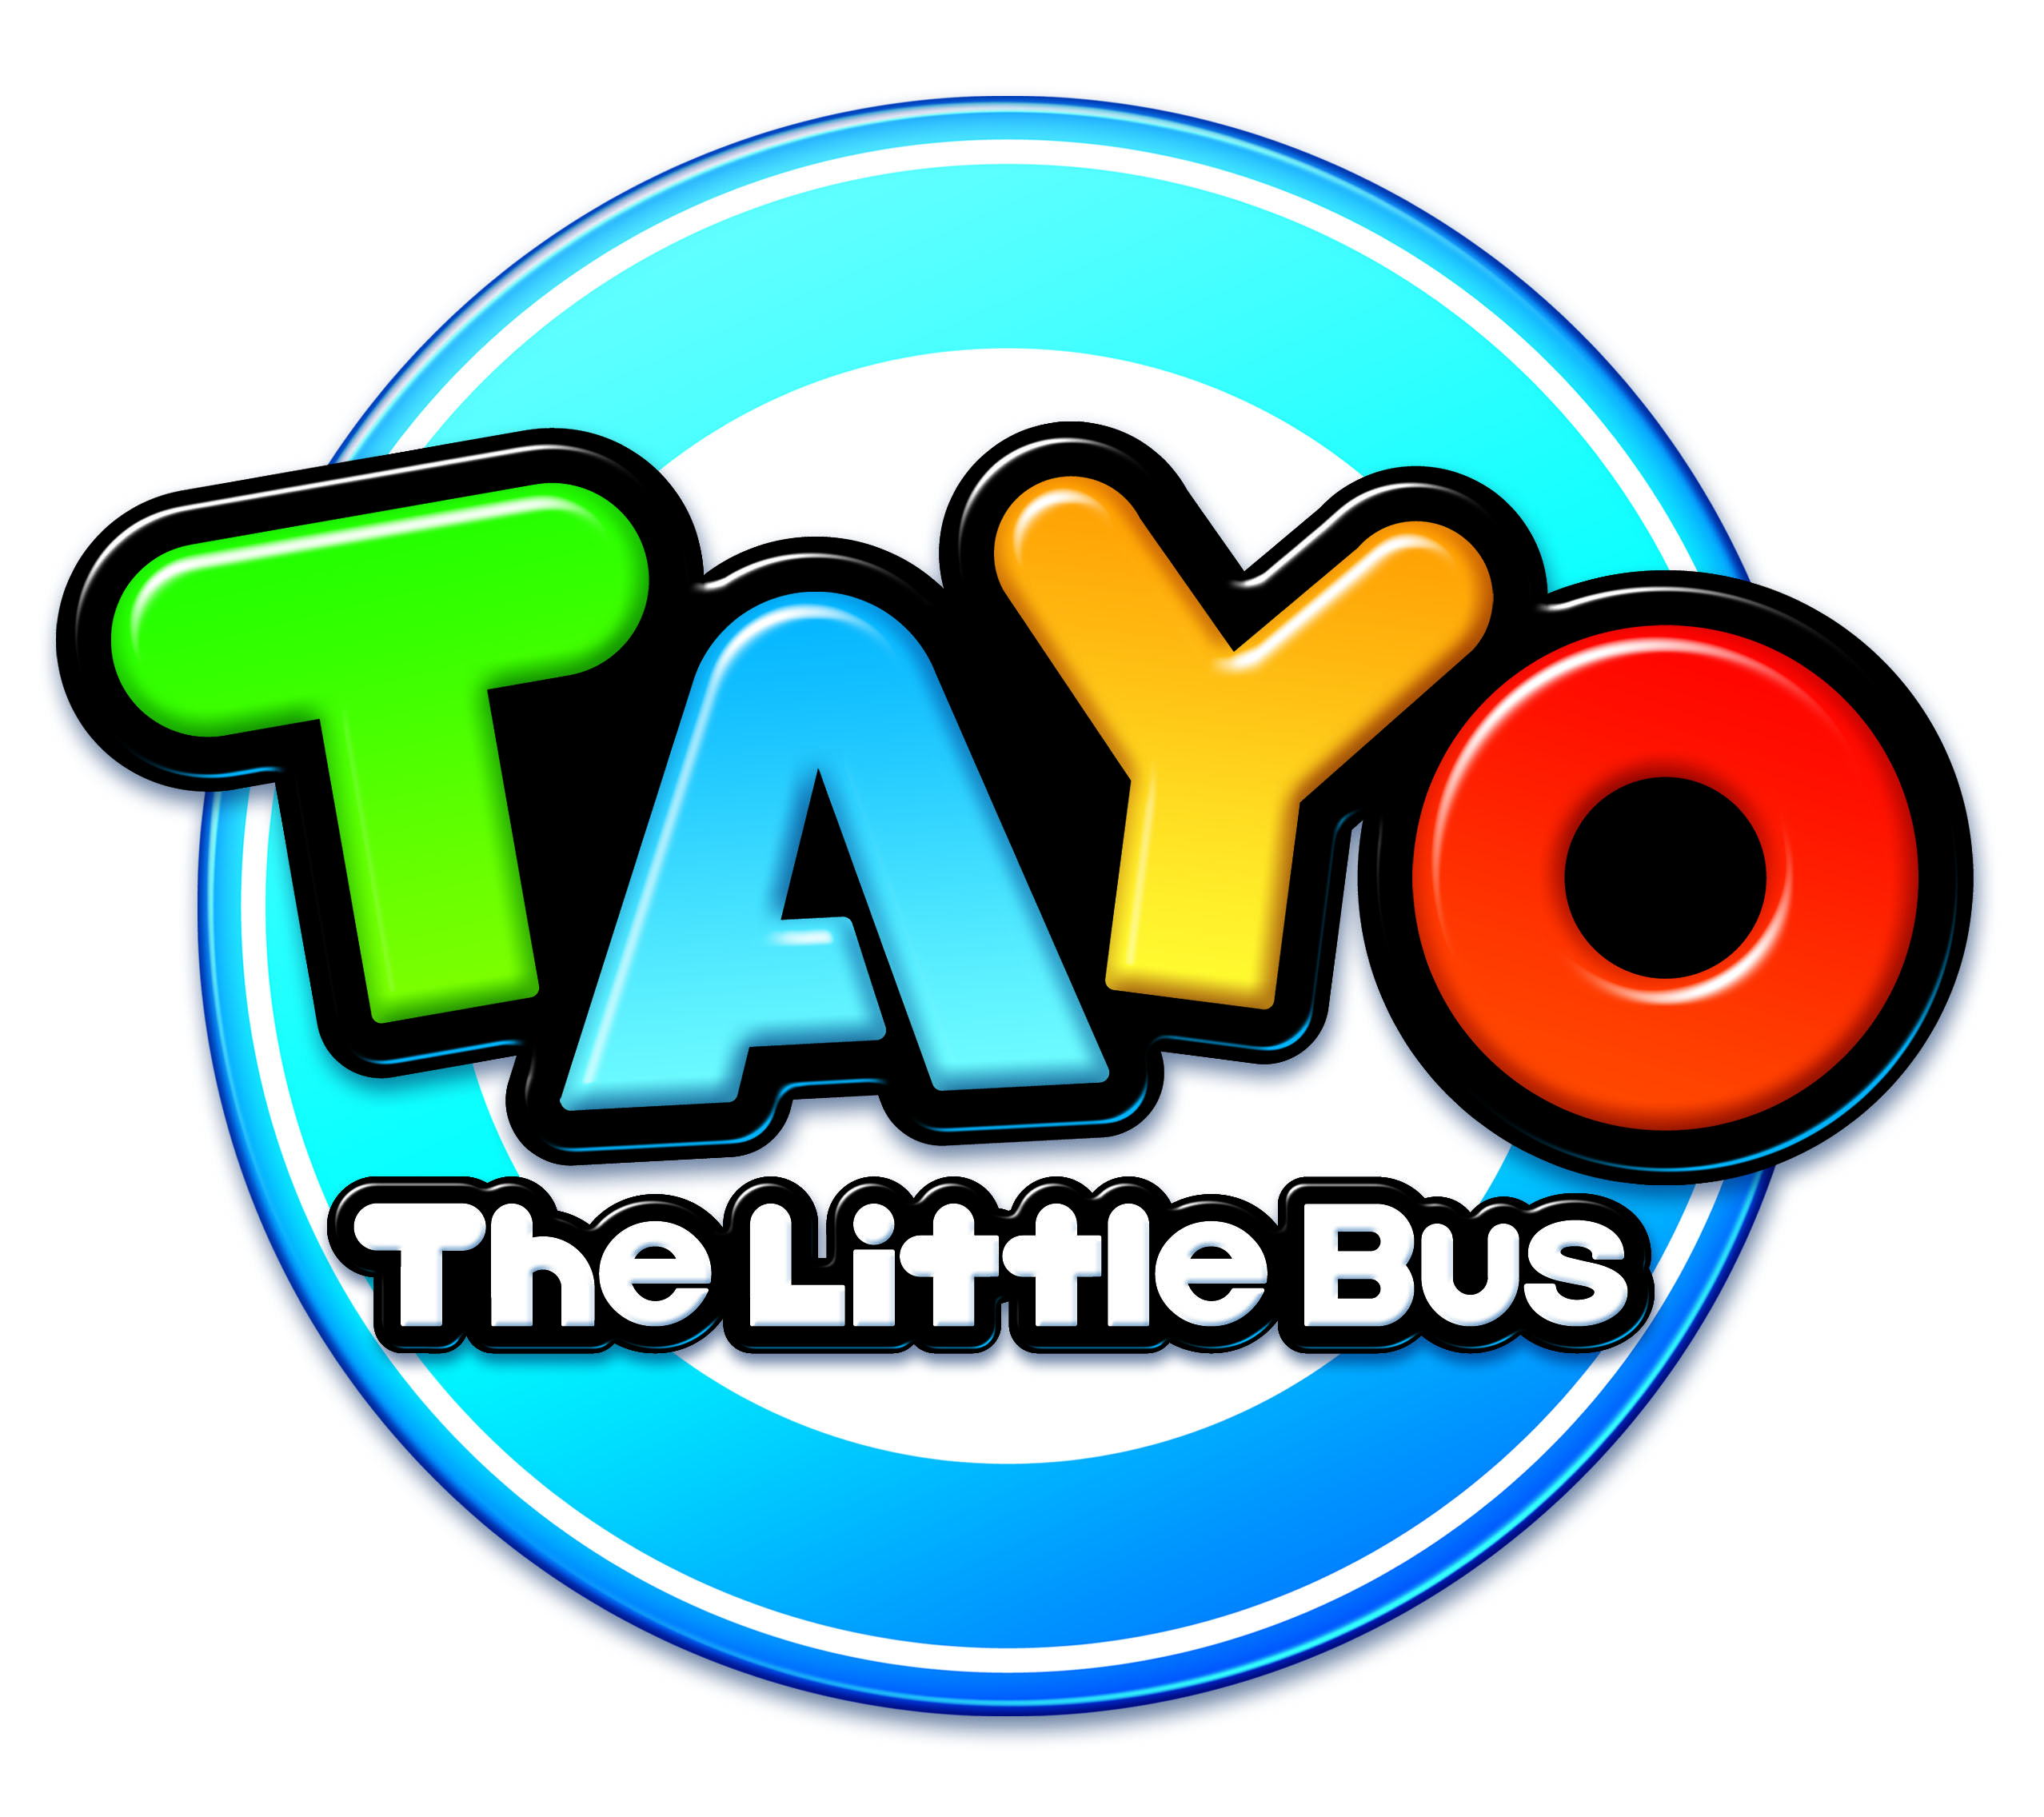 Tayo the little bus 2010 logo